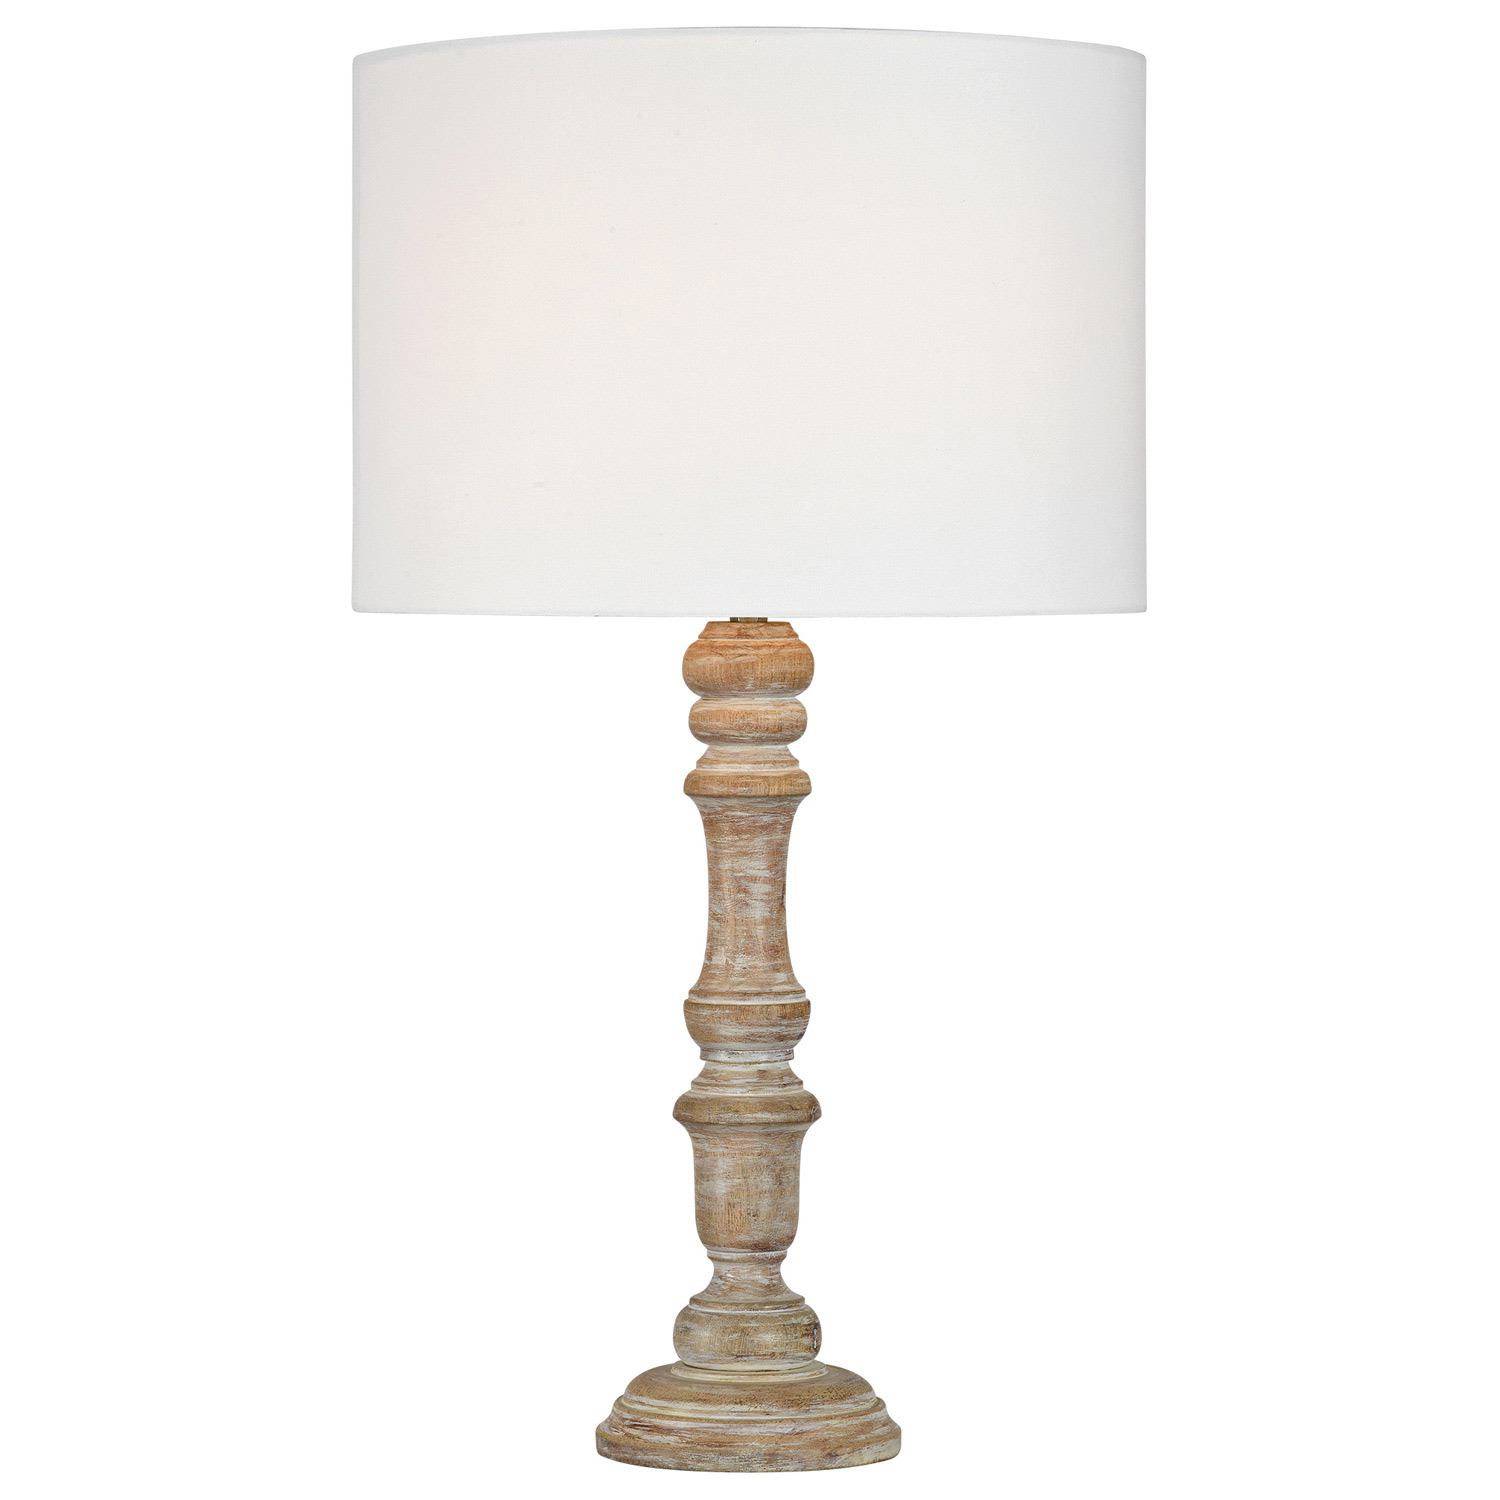 Ren-Wil Huntington Table Lamp - Natural